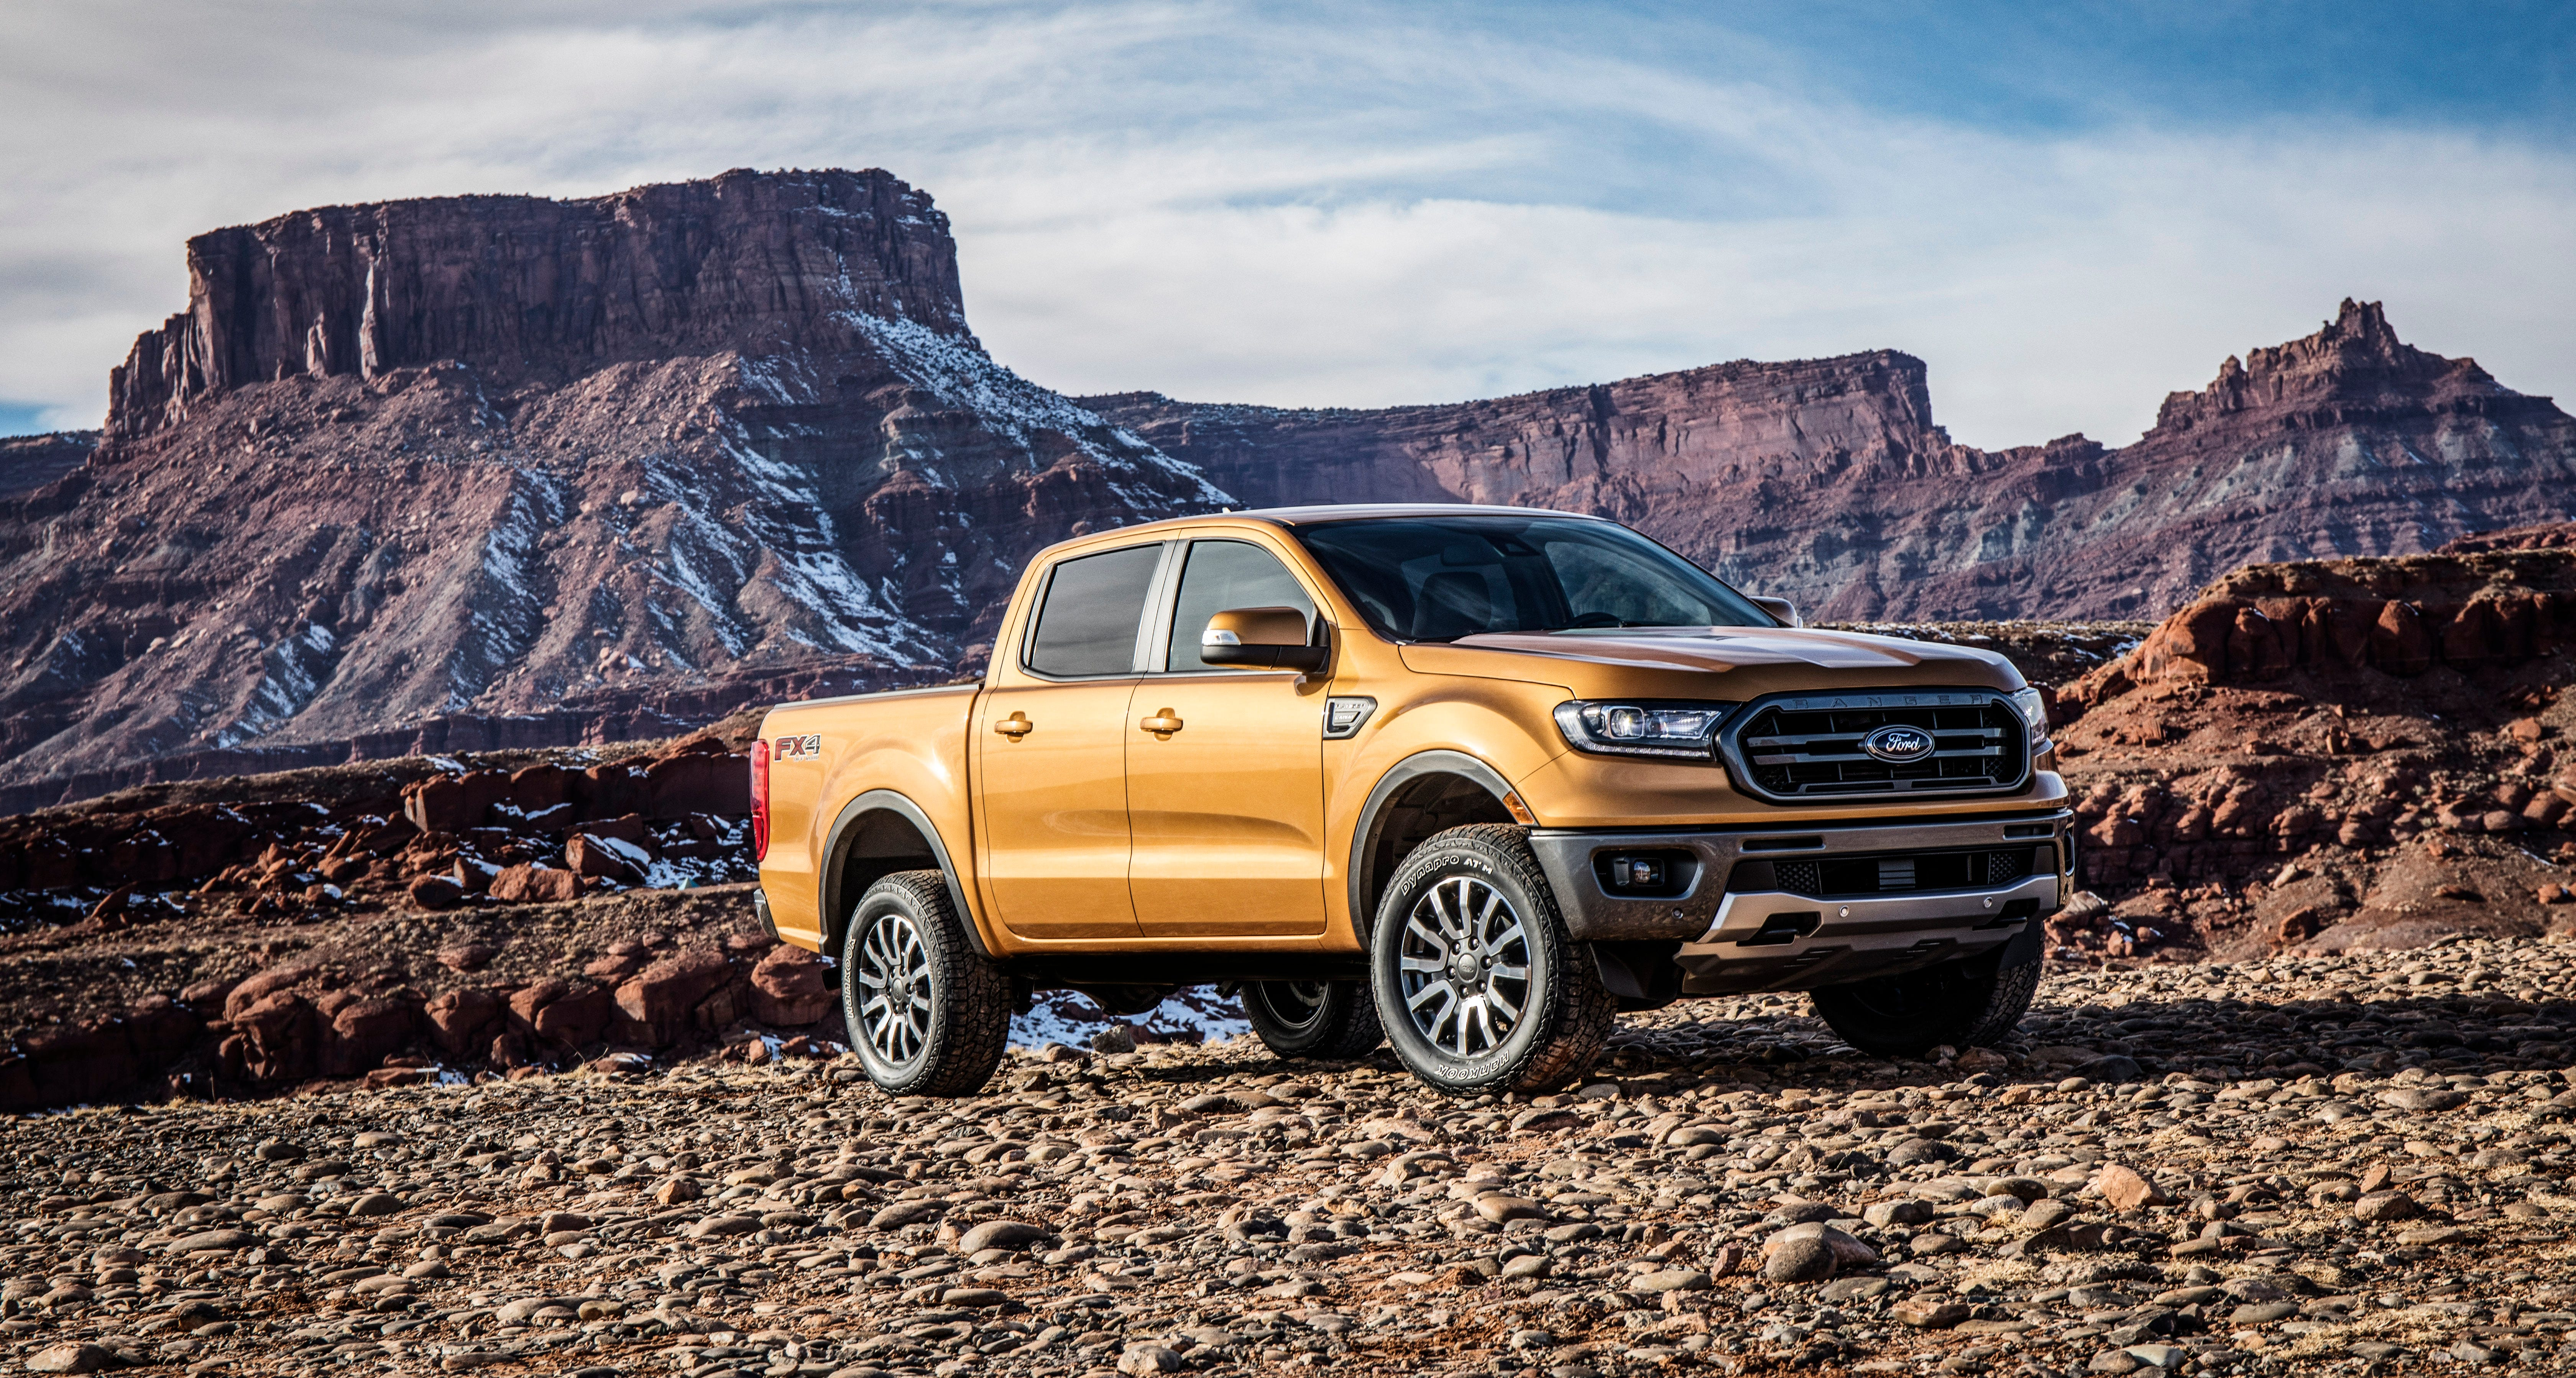 See photos of 26 highest-quality cars, trucks, SUVs of 2020, according to J.D. Power IQS